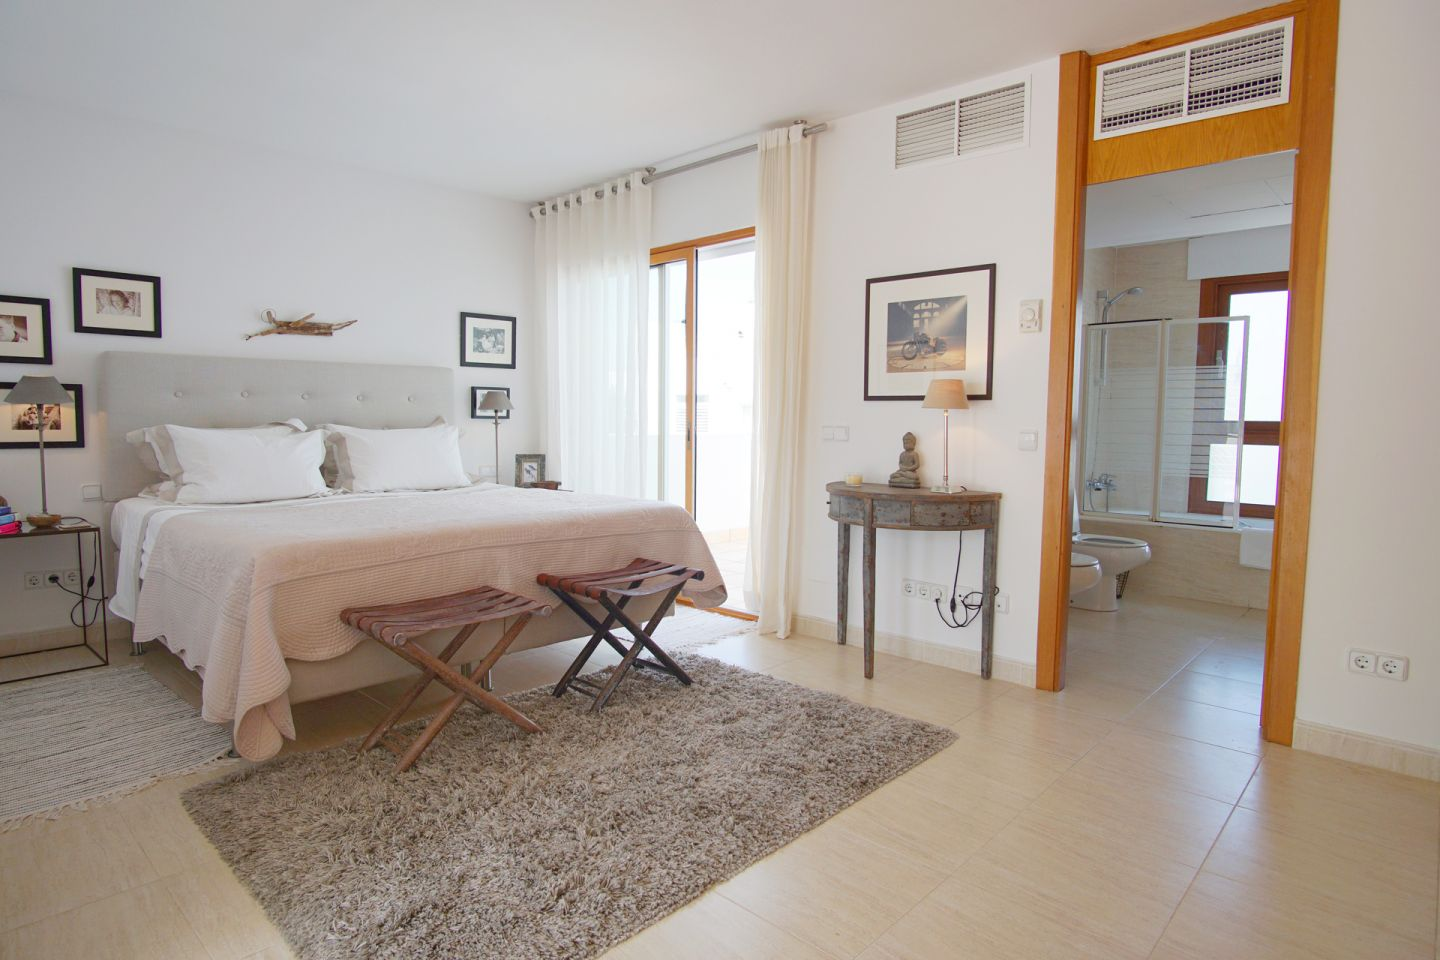 4 Bed Townhouse for sale in PUERTO POLLENSA 5